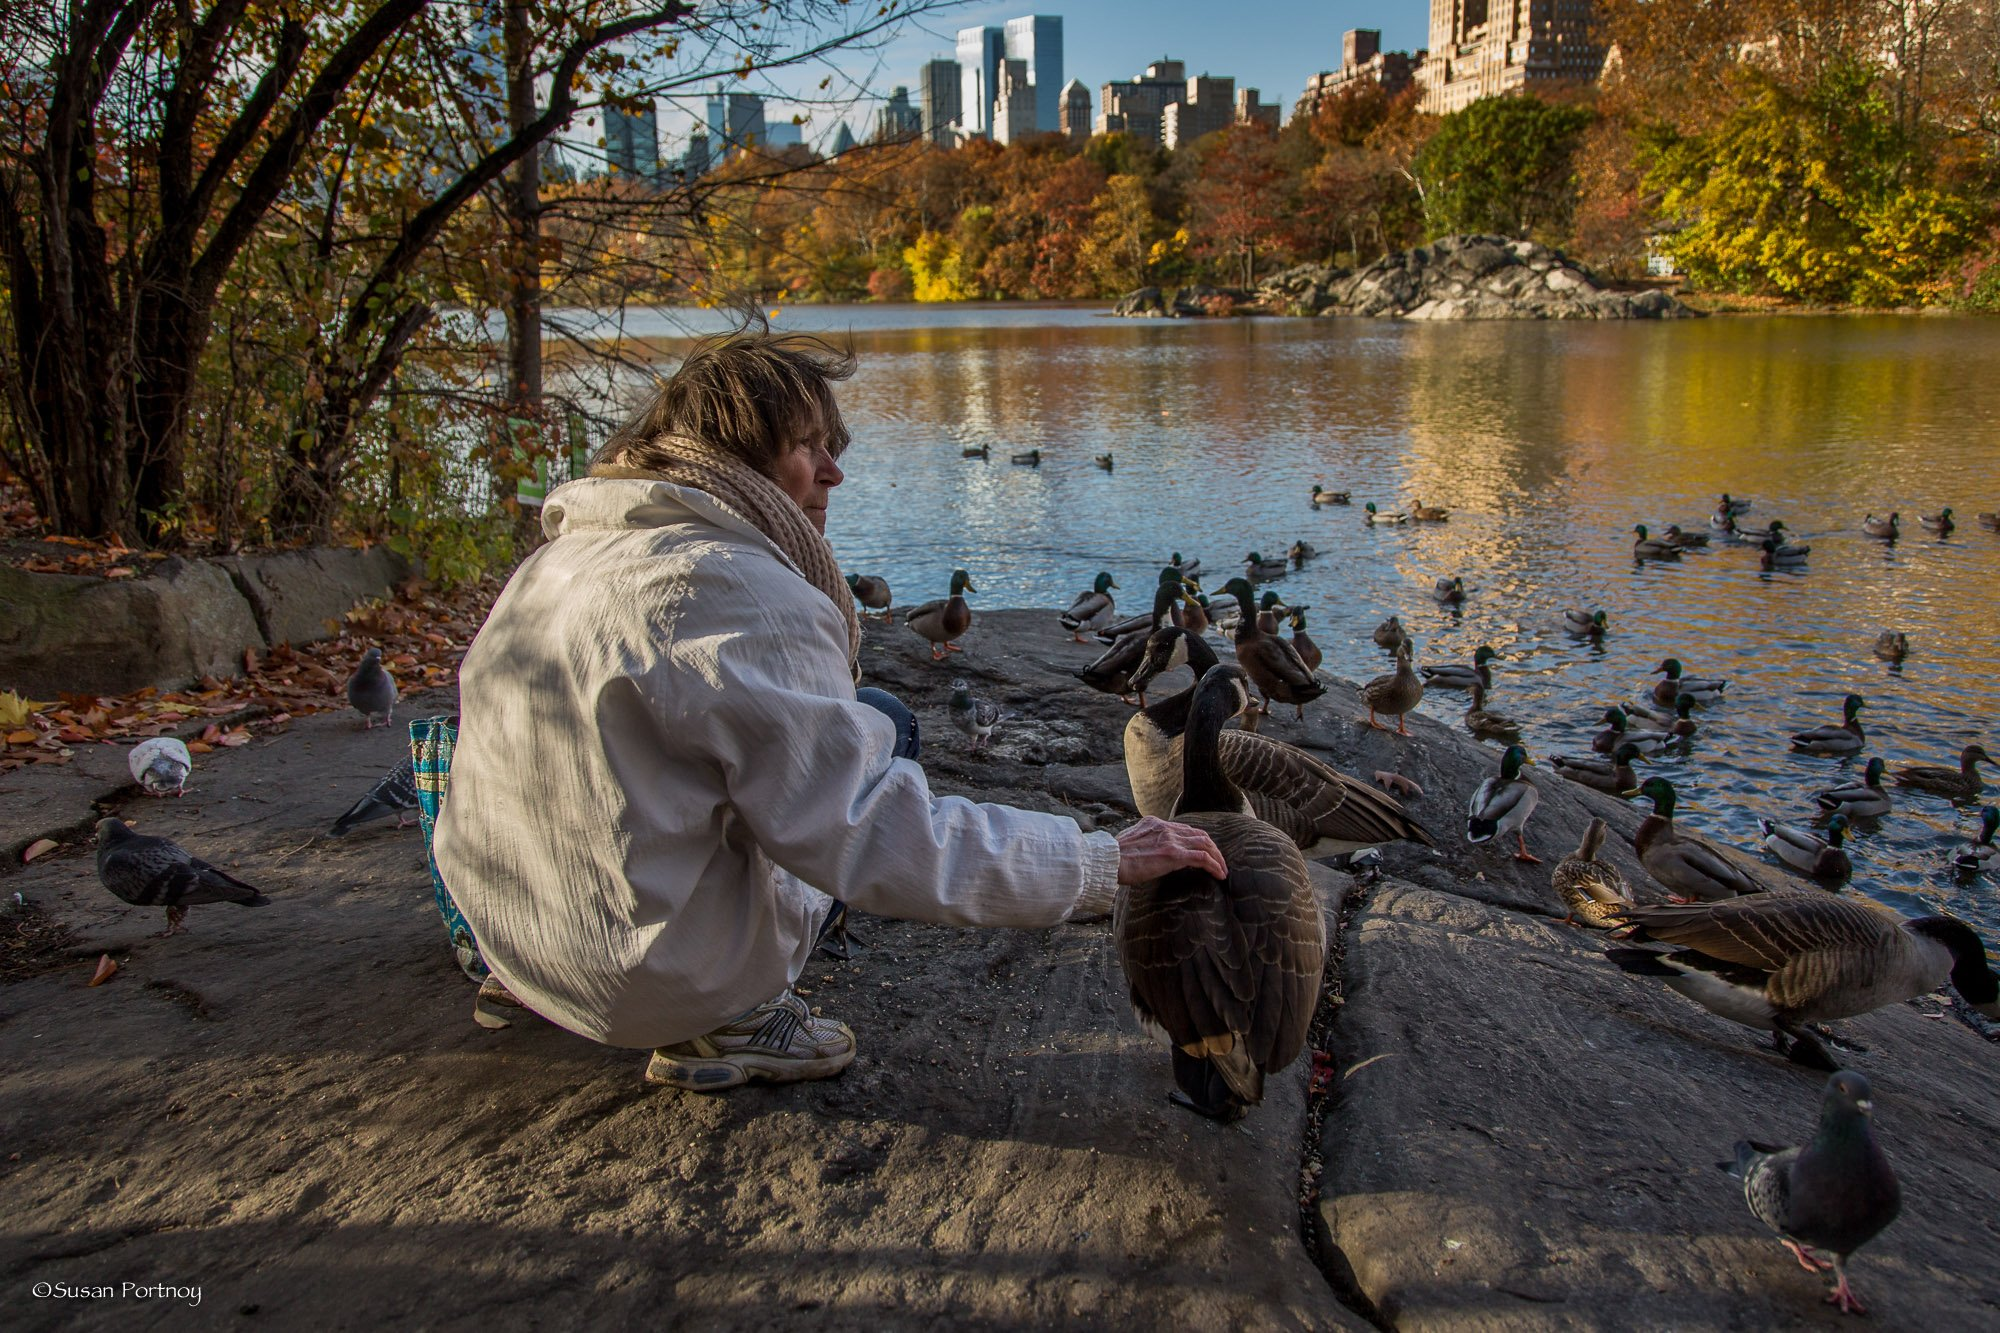 Lilian Bobo and friend and goose in Central Park